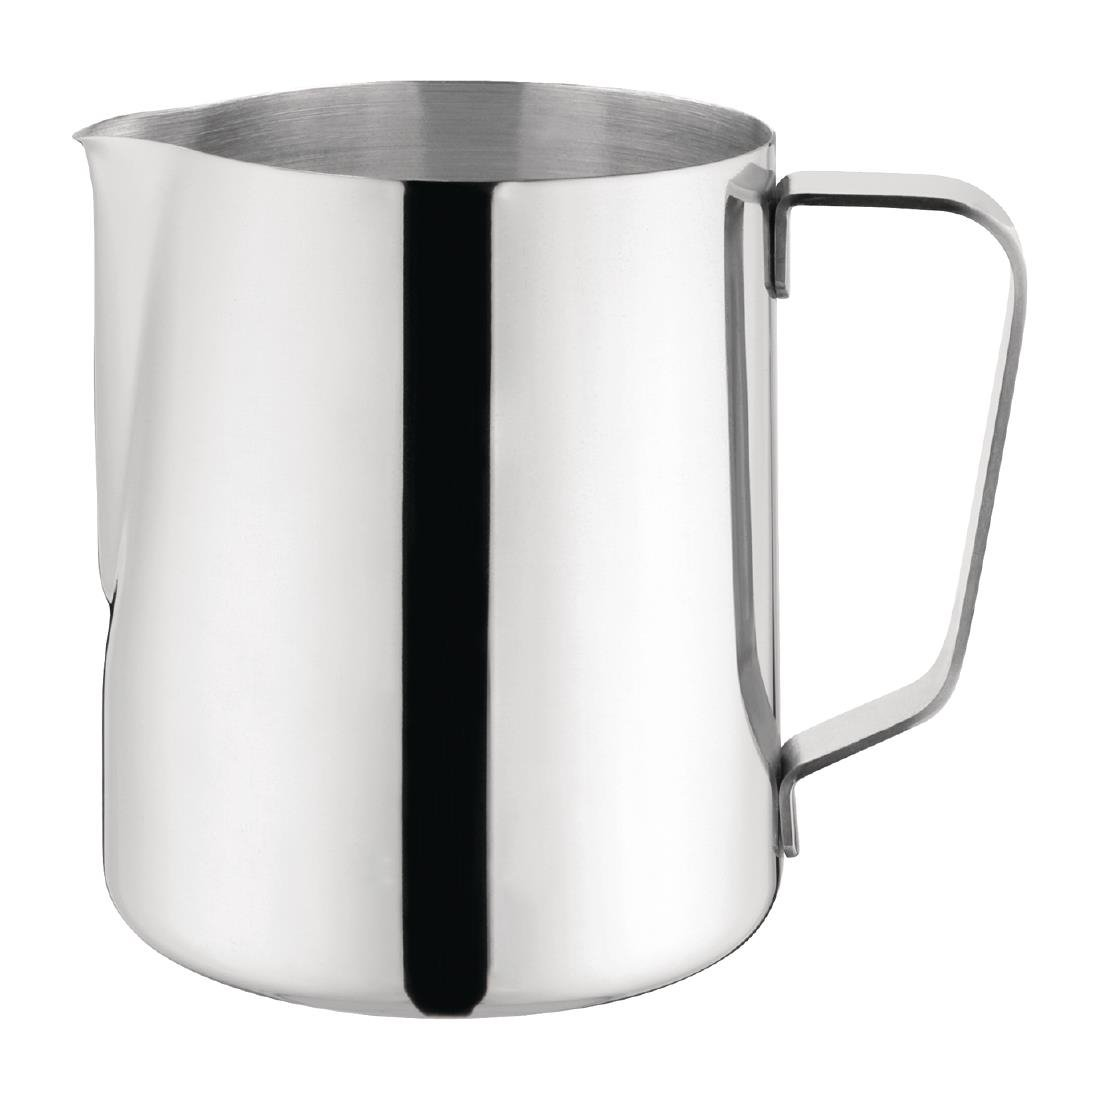 Milk or Water Jug 48oz/1365ml